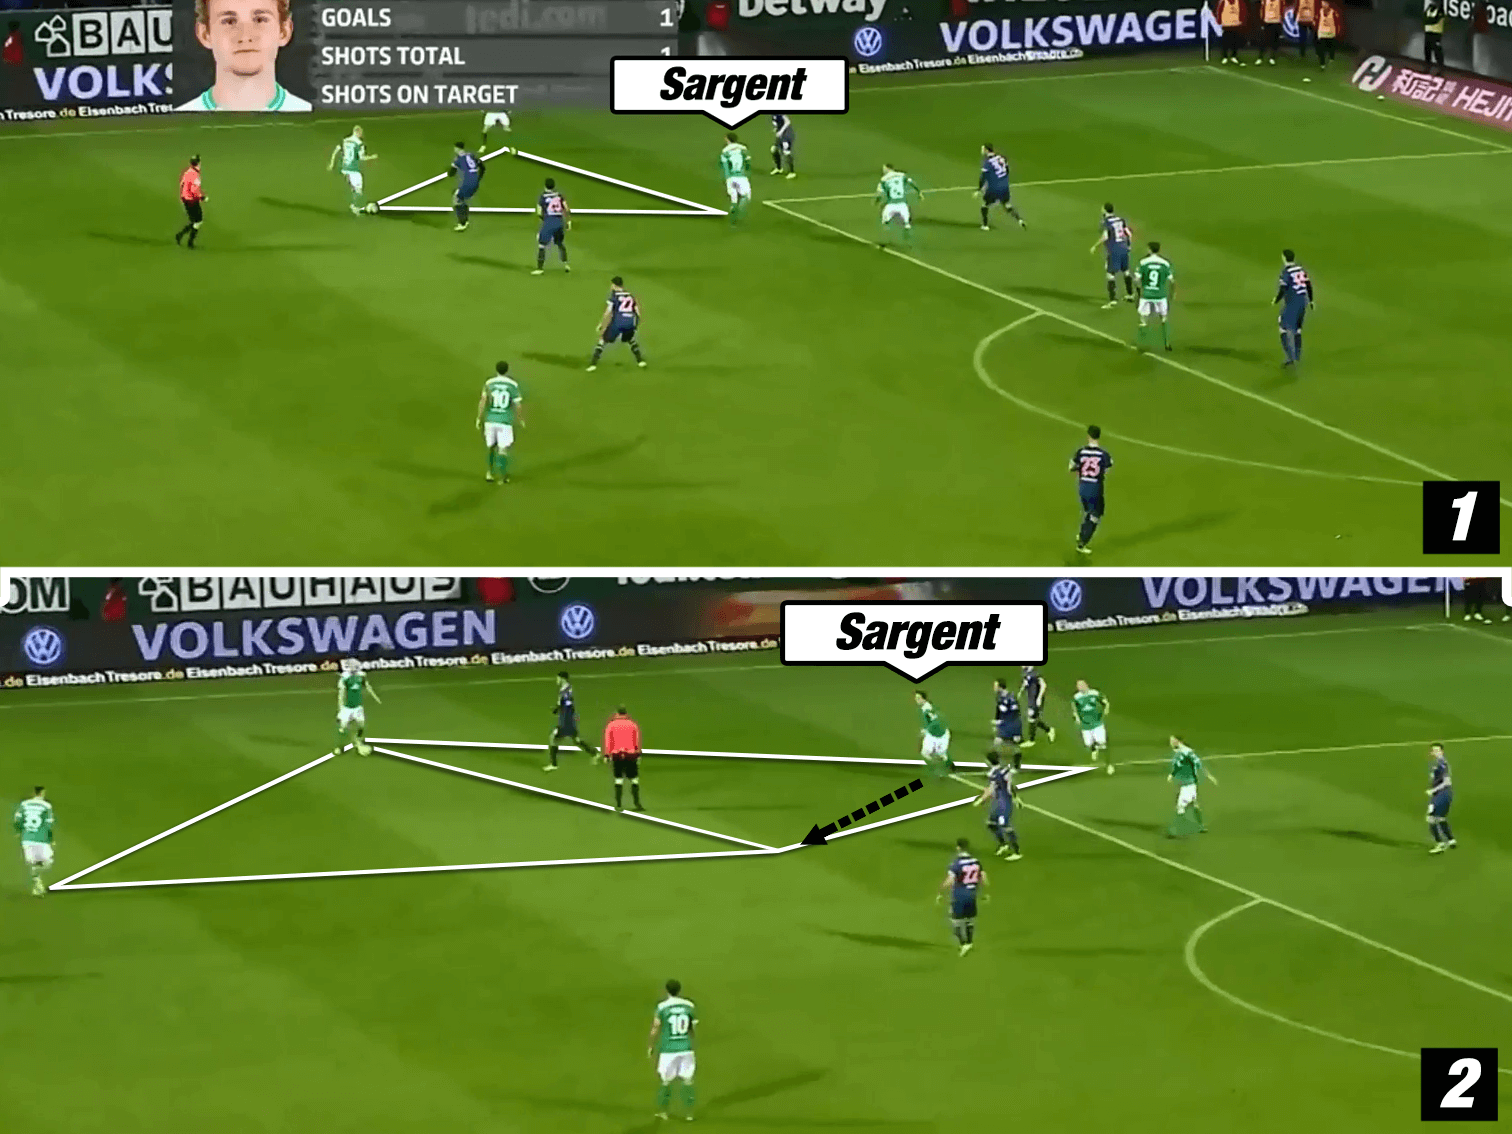 Sargent Werder Bundesliga Tactical Analysis Statistics